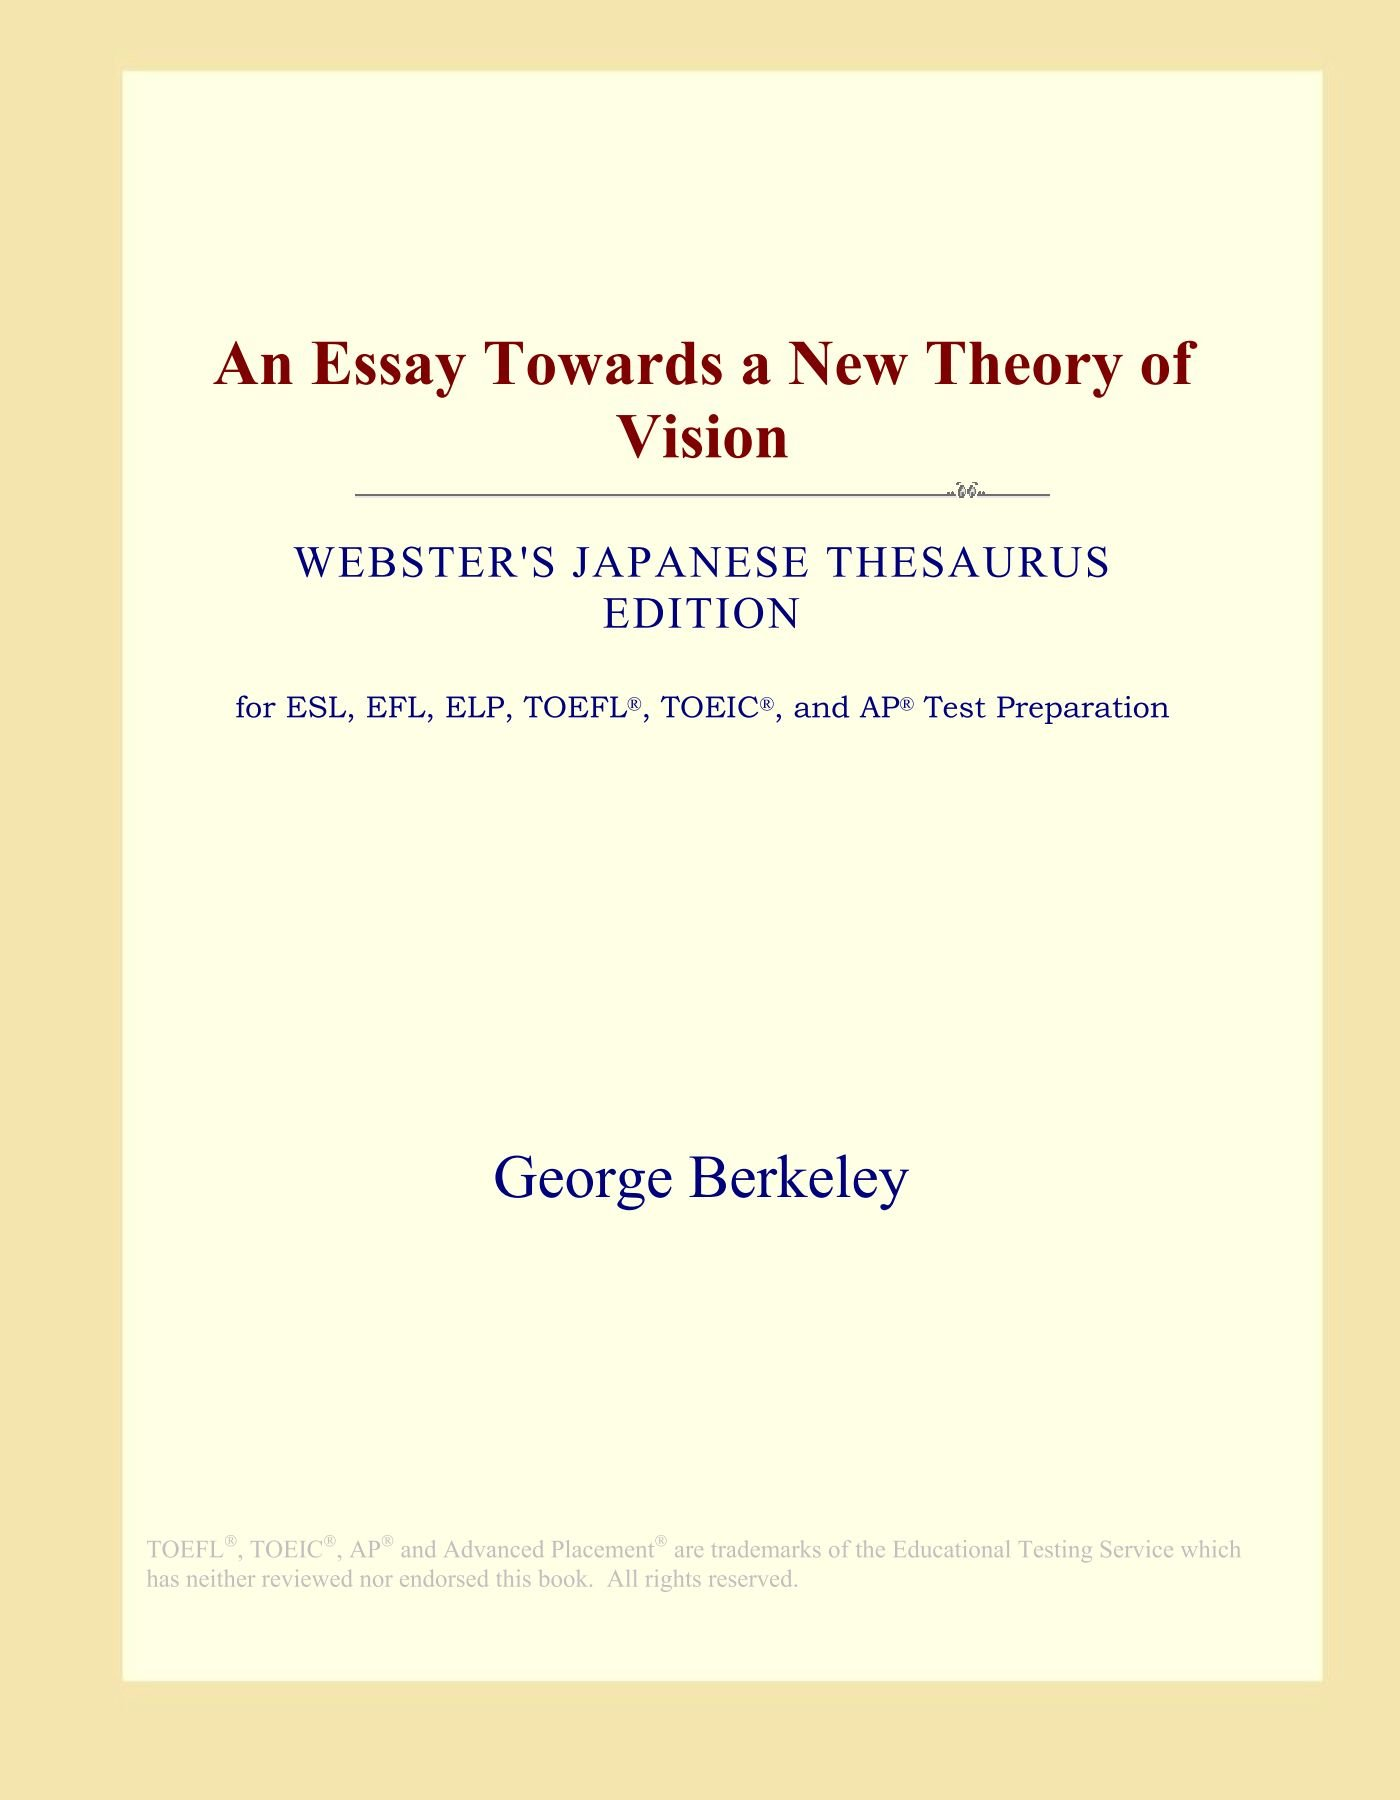 An Essay Towards a New Theory of Vision (Webster's Japanese Thesaurus Edition) pdf epub